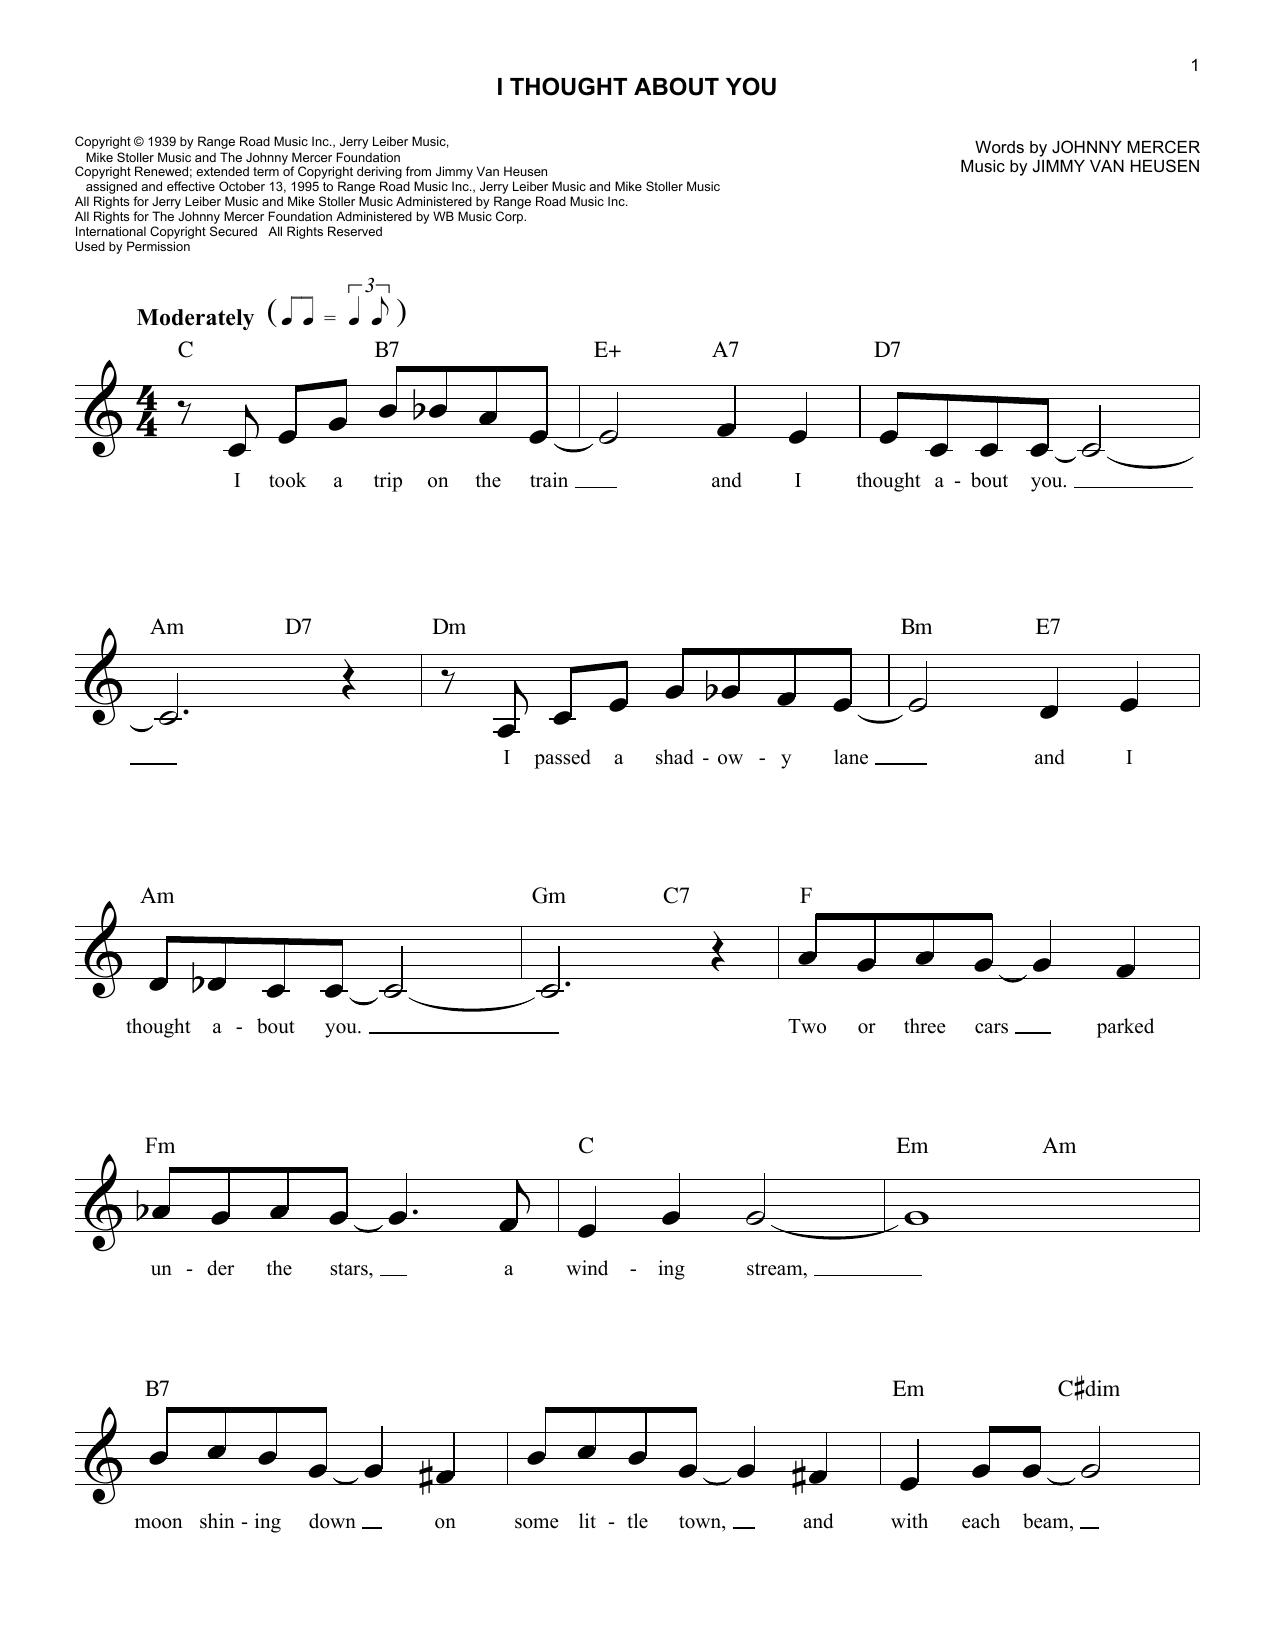 Jimmy Van Heusen I Thought About You sheet music notes and chords. Download Printable PDF.